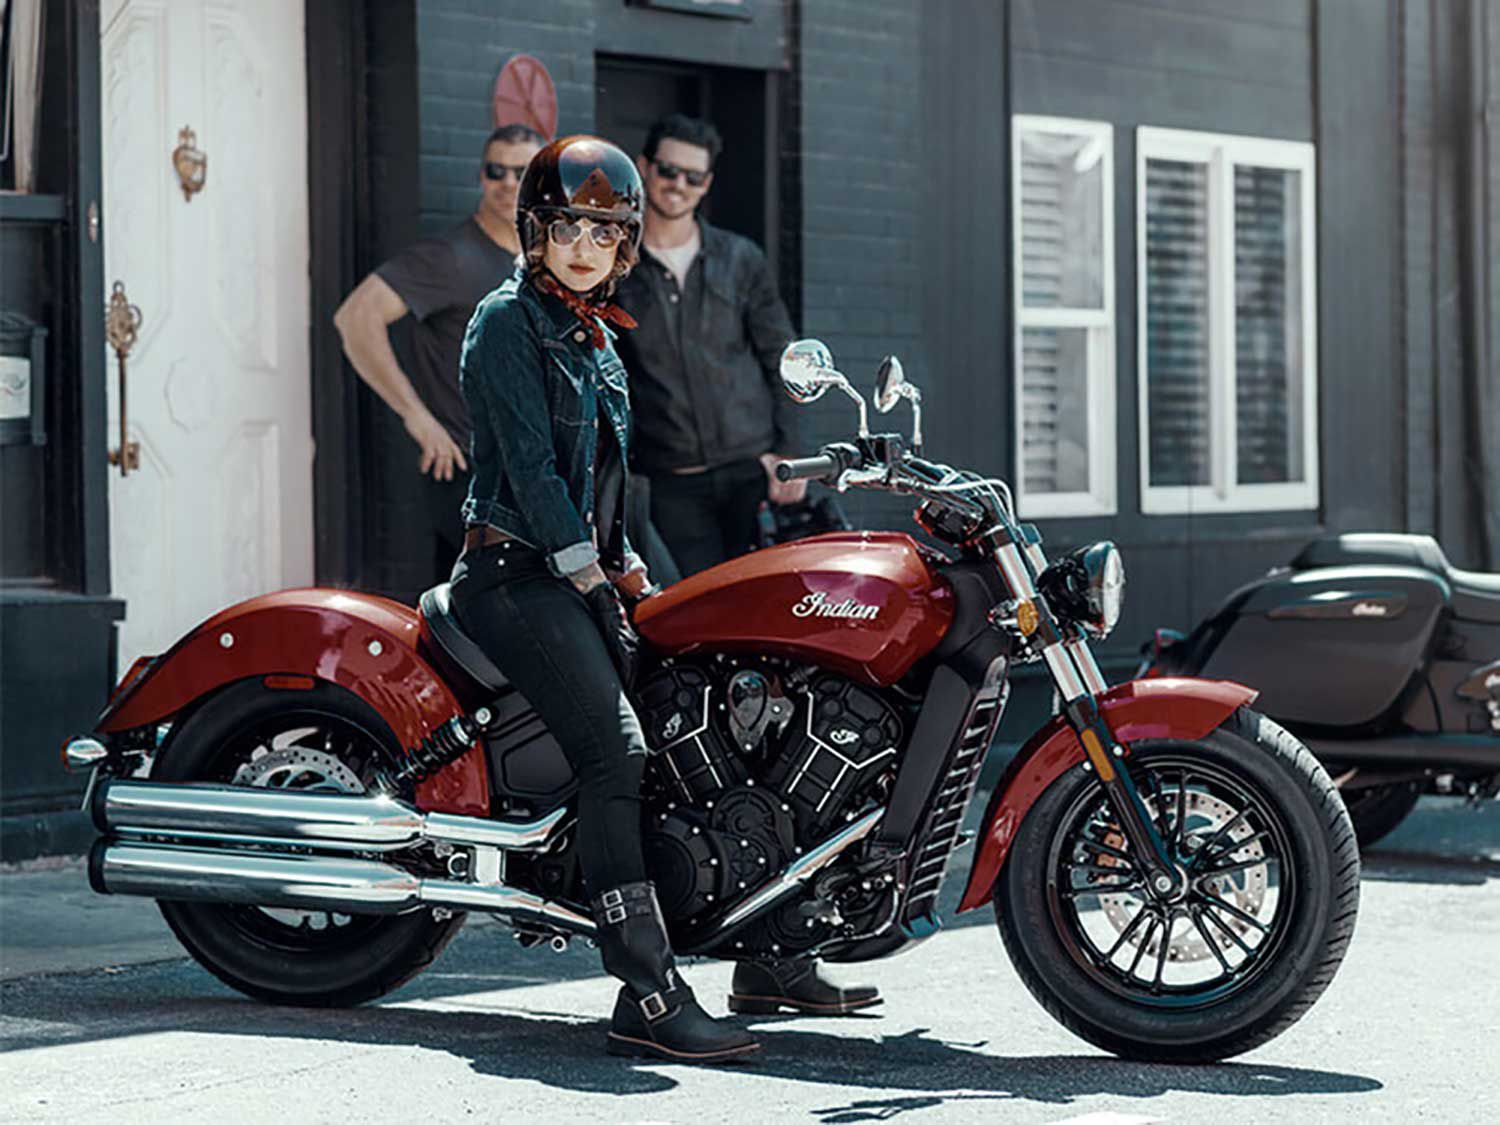 The Scout Sixty has a five-speed gearbox and a bit less horsepower, but has the same qualities that make the standard Scout so great.